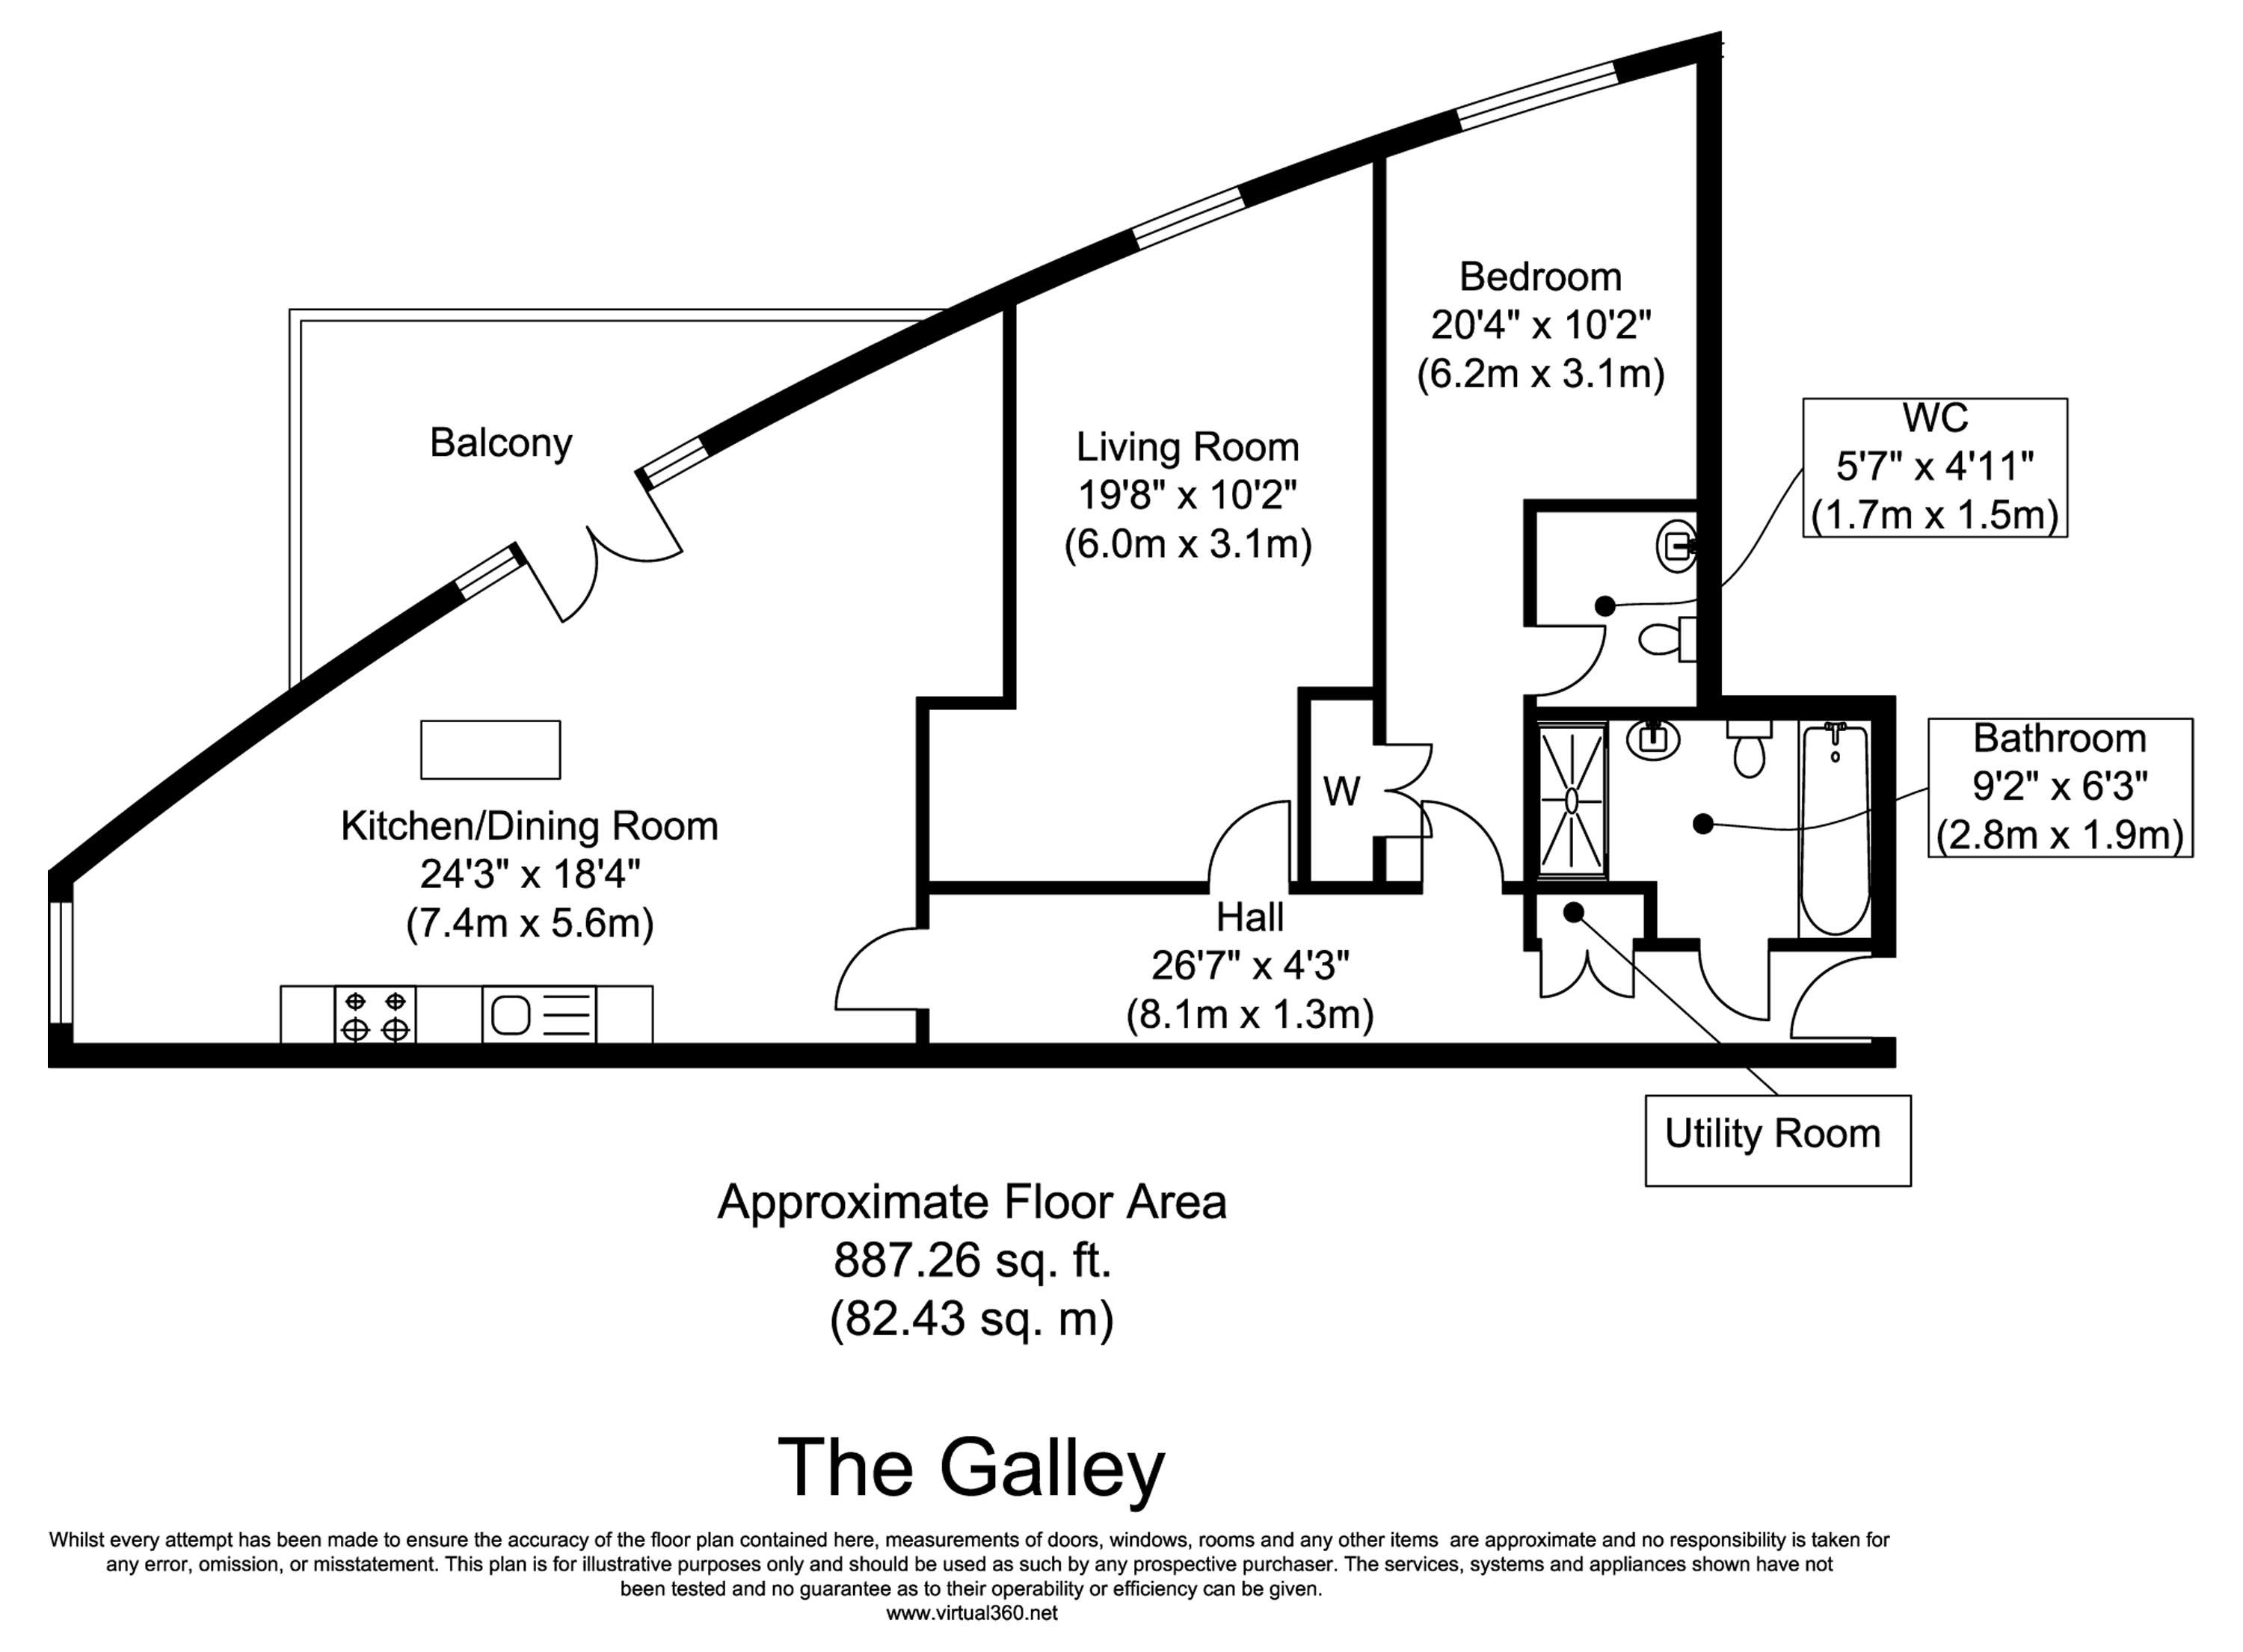 Floorplan for the property 2 bed Apartment to rent in The Galley, E16 - 1